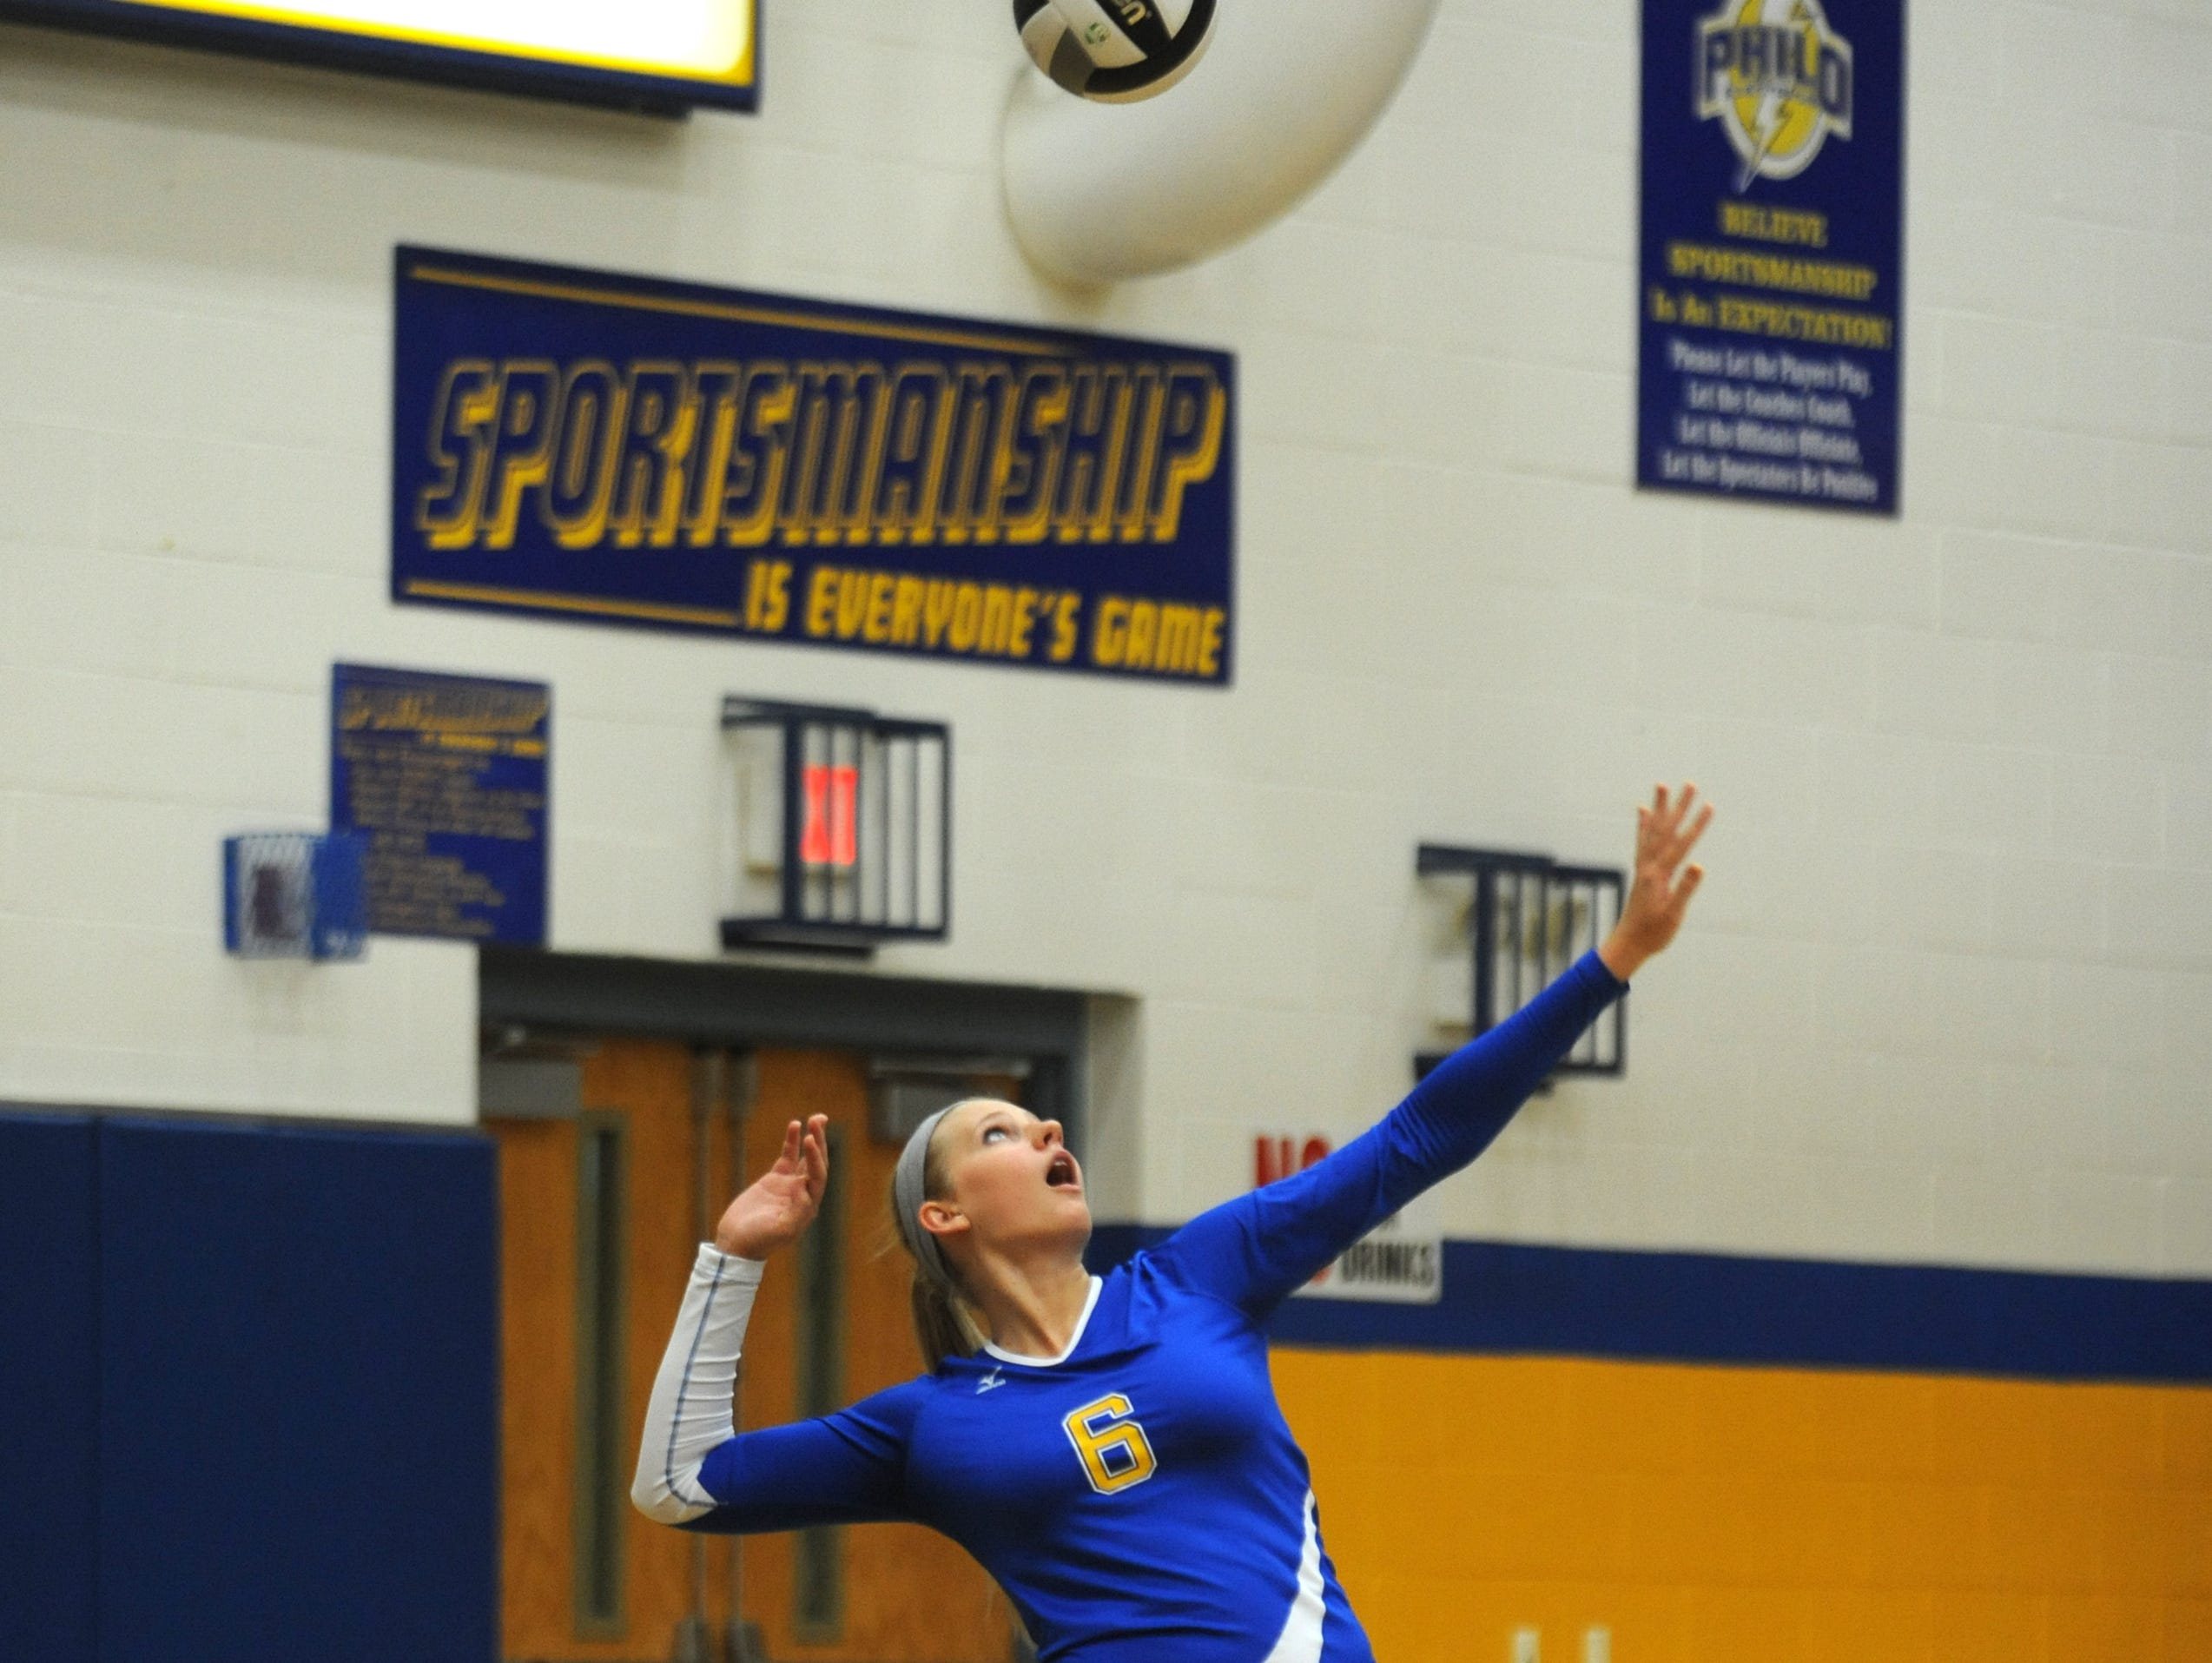 Philo's Corrie Burkhardt earned All-Ohio recognition from the state's volleyball coaches on Sunday night.